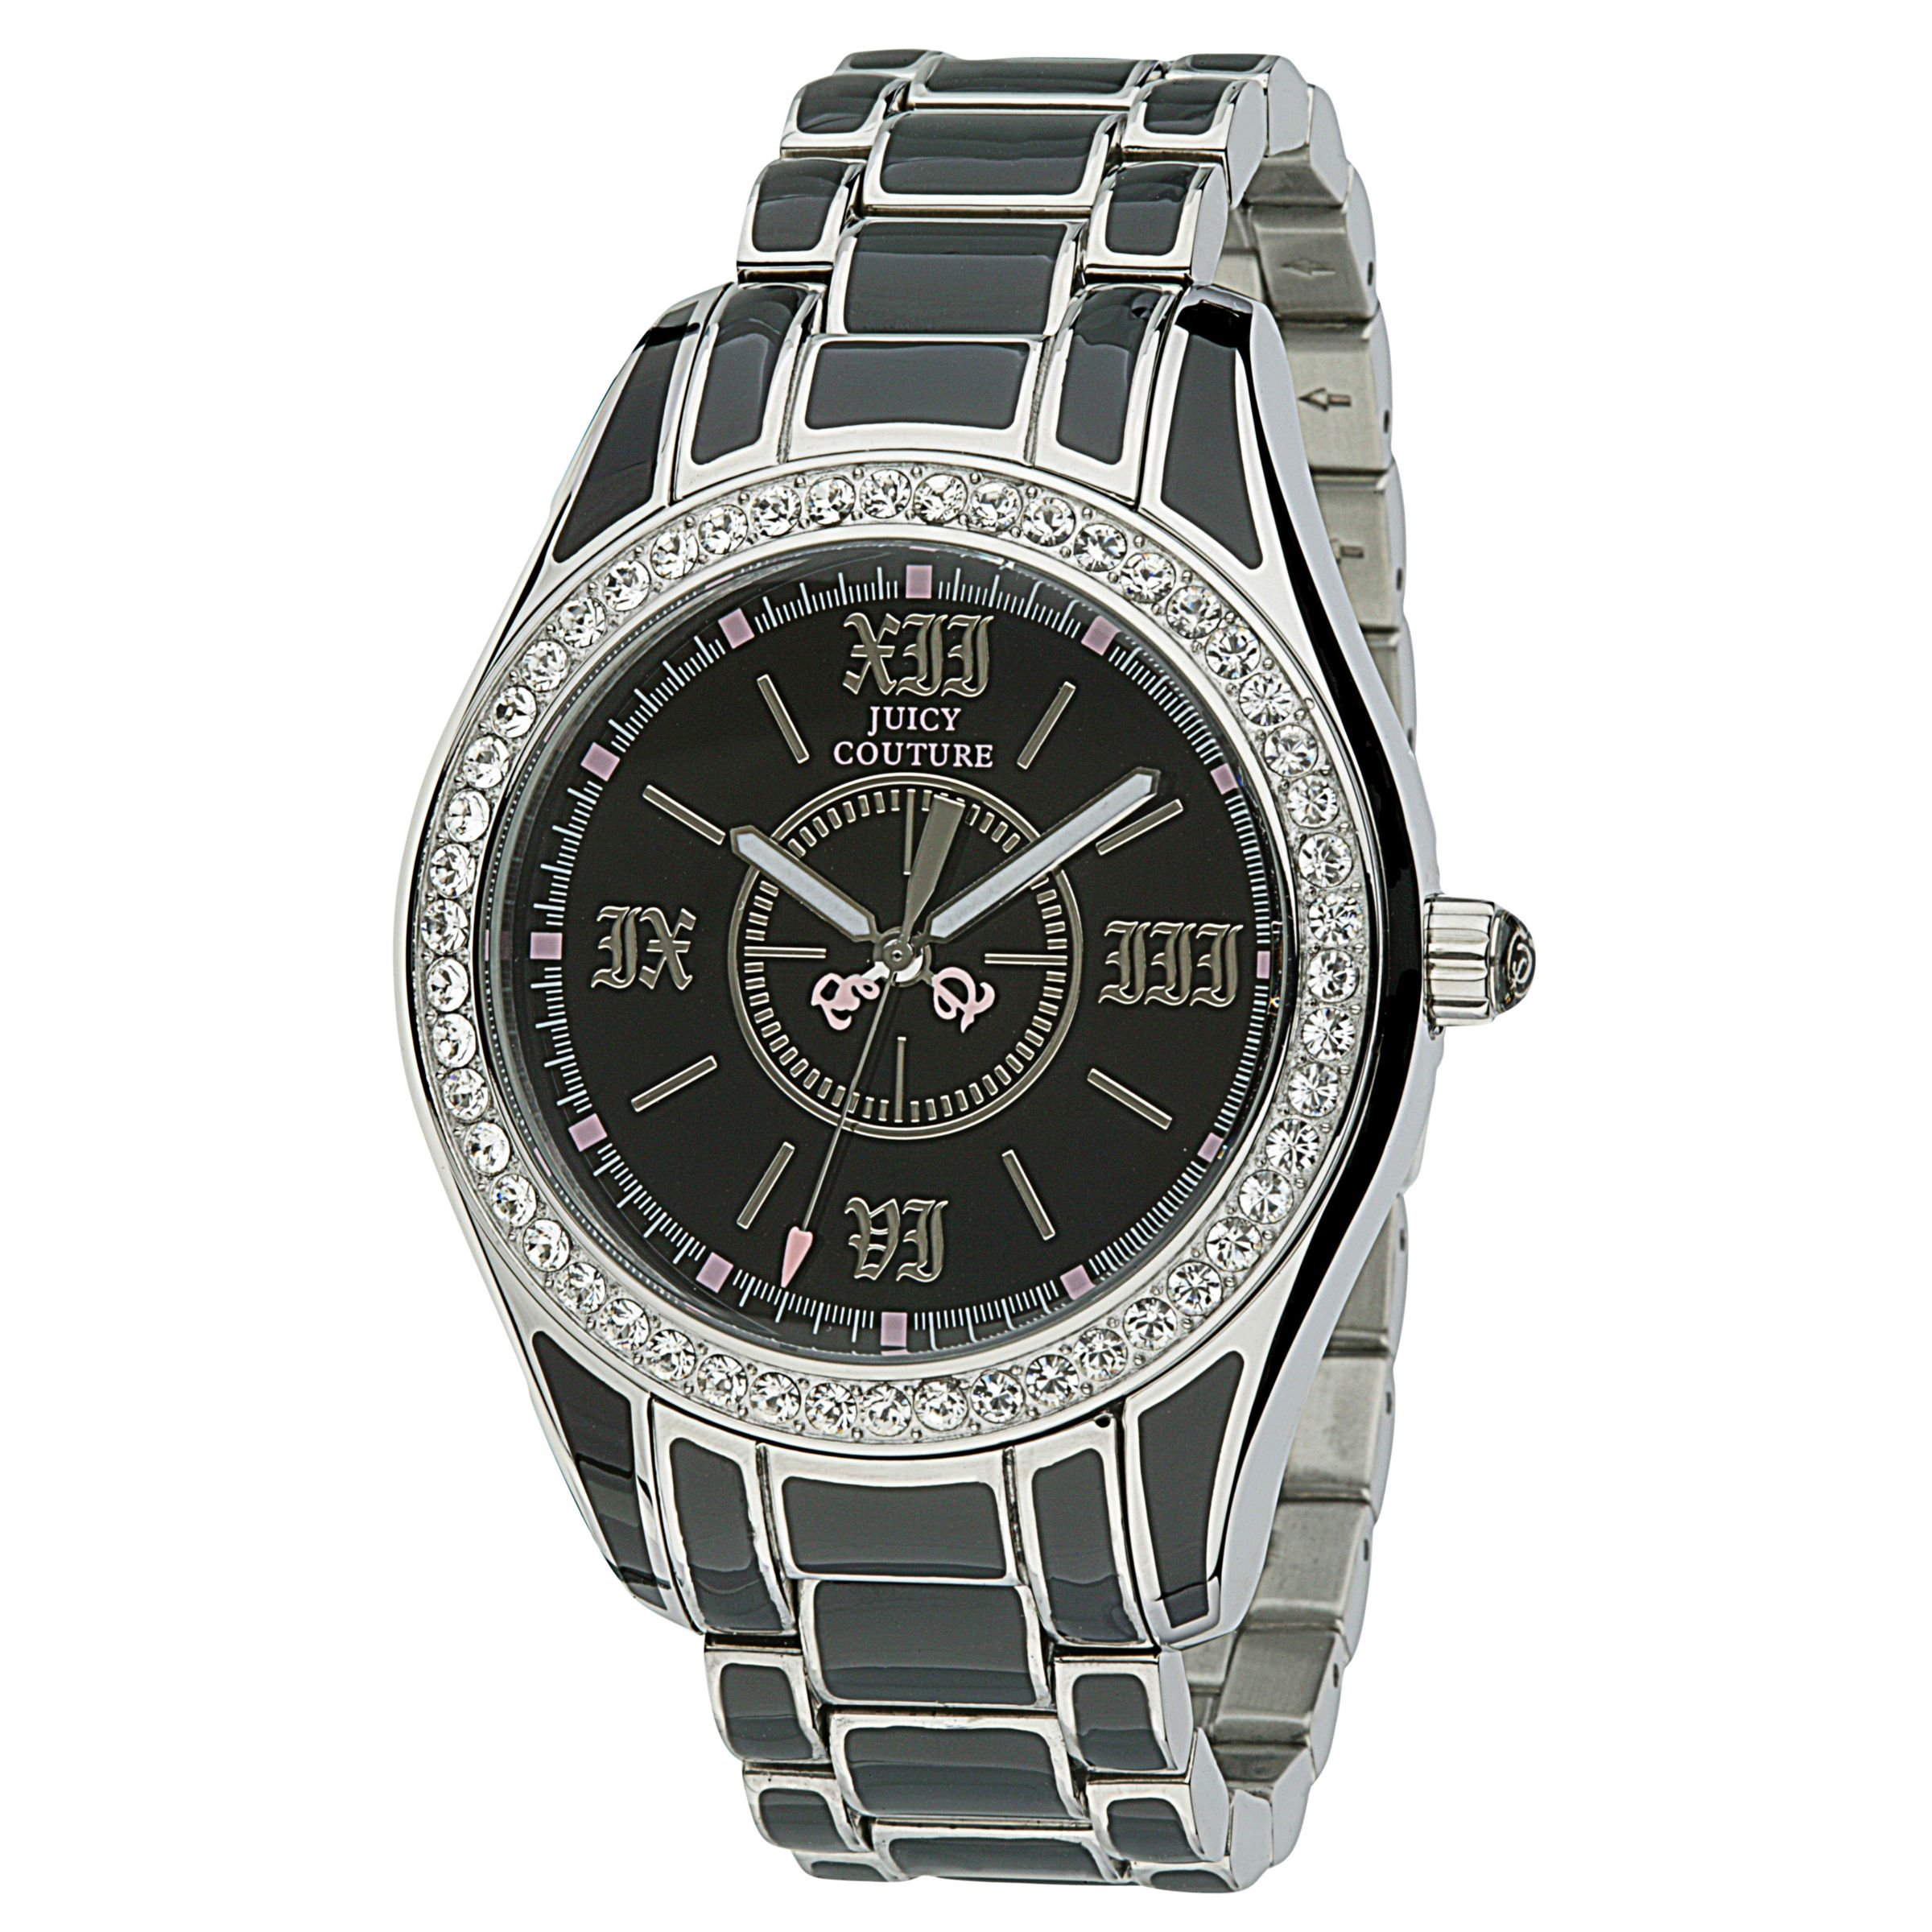 Juicy Couture 1900583 Women